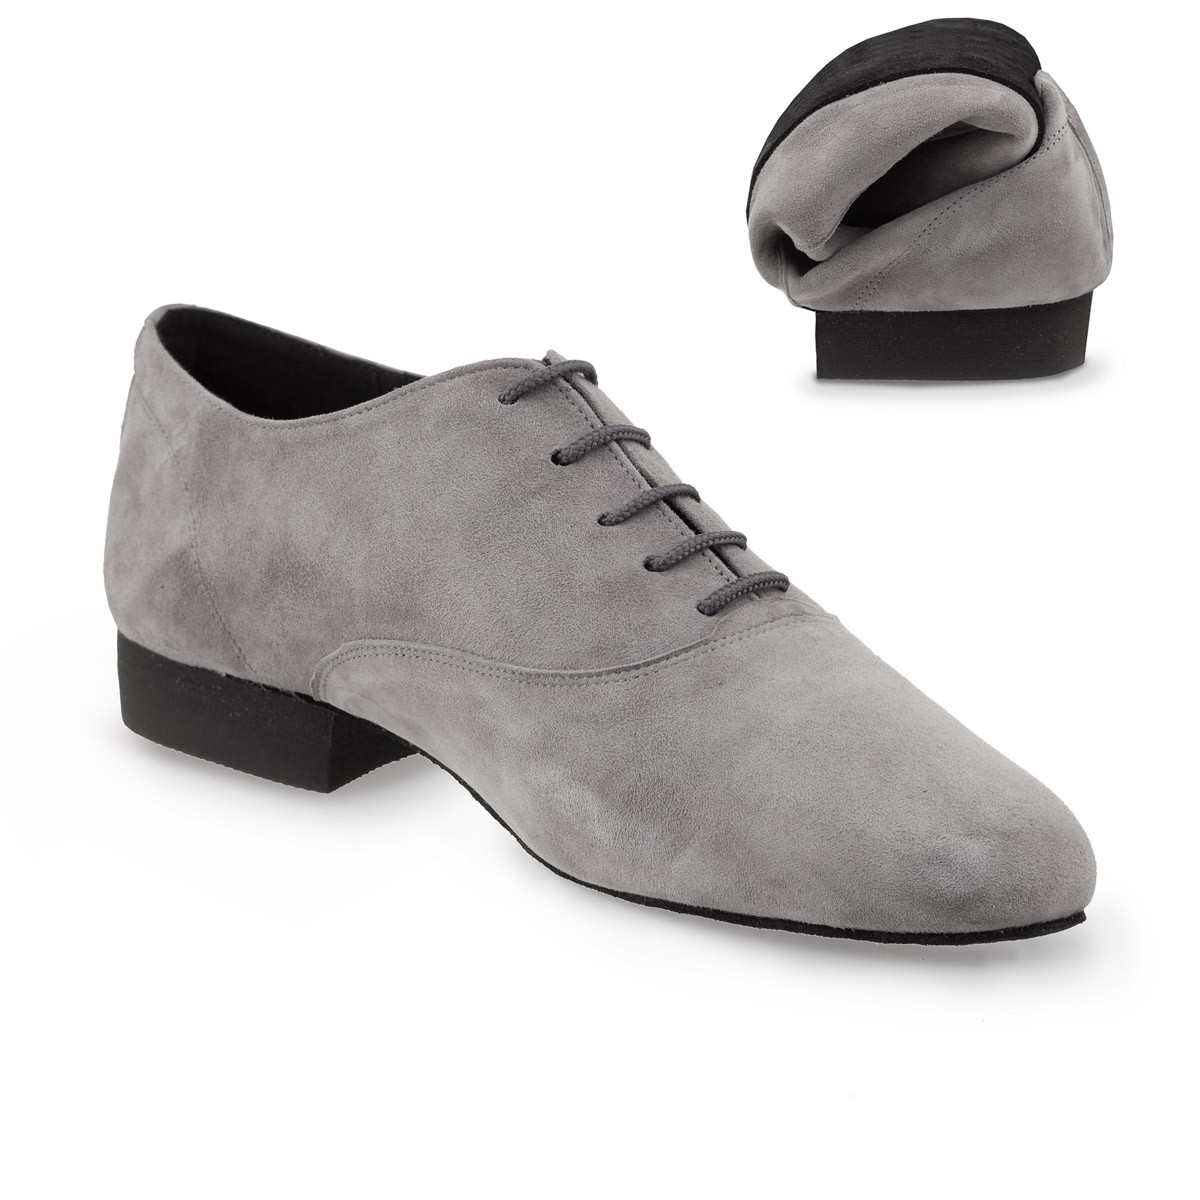 leather latin dance shoes for men